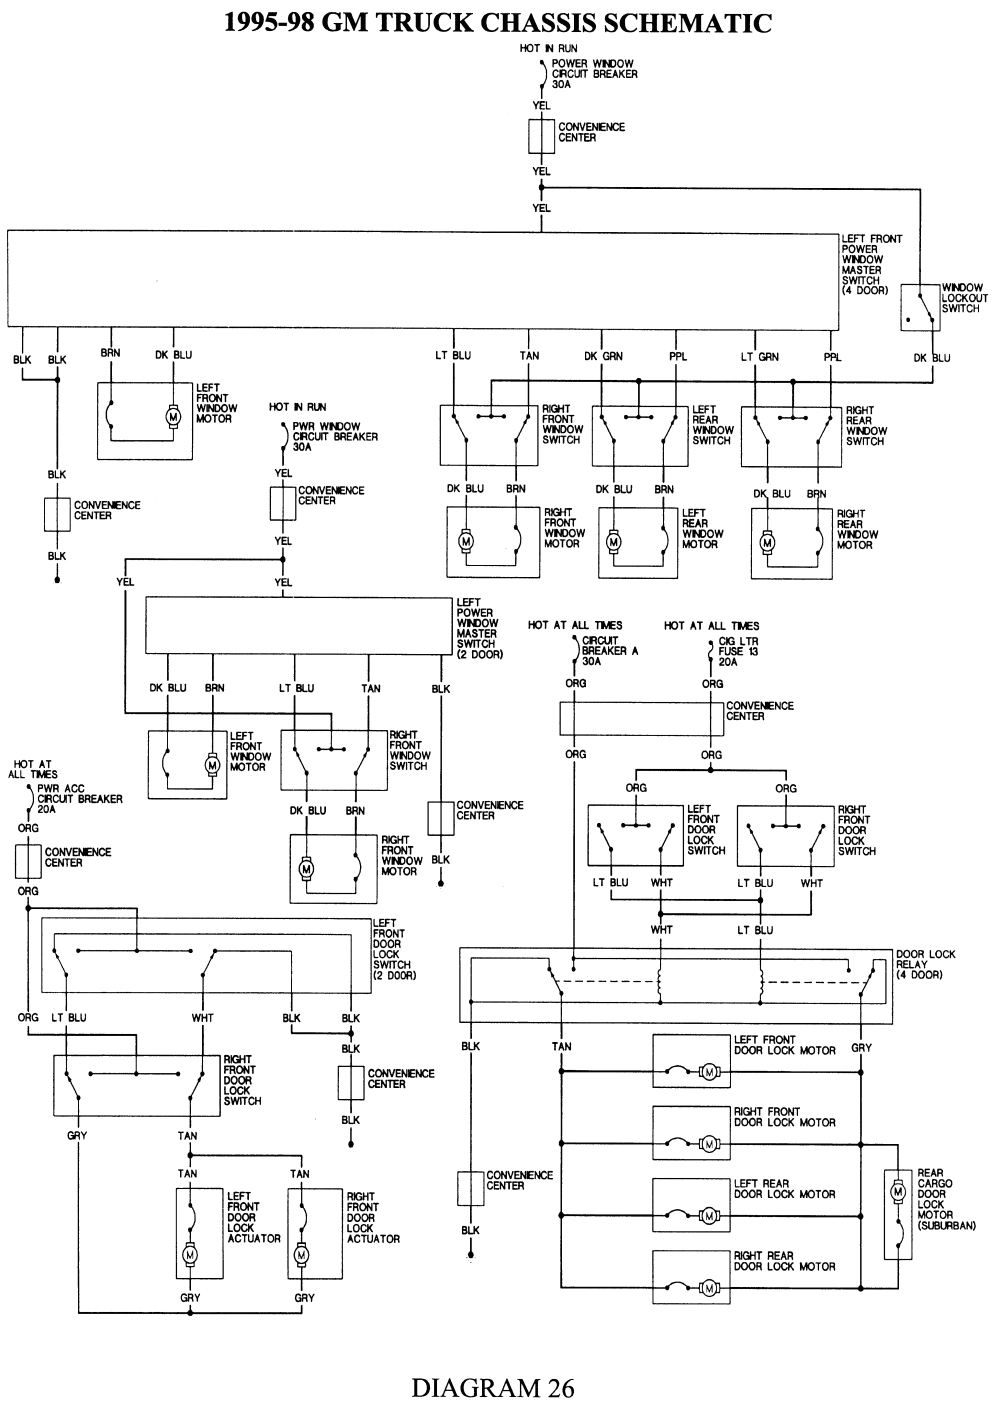 repair guides wiring diagrams wiring diagrams autozone com wiring diagram gm 5 prong axle actuator get free image about wiring